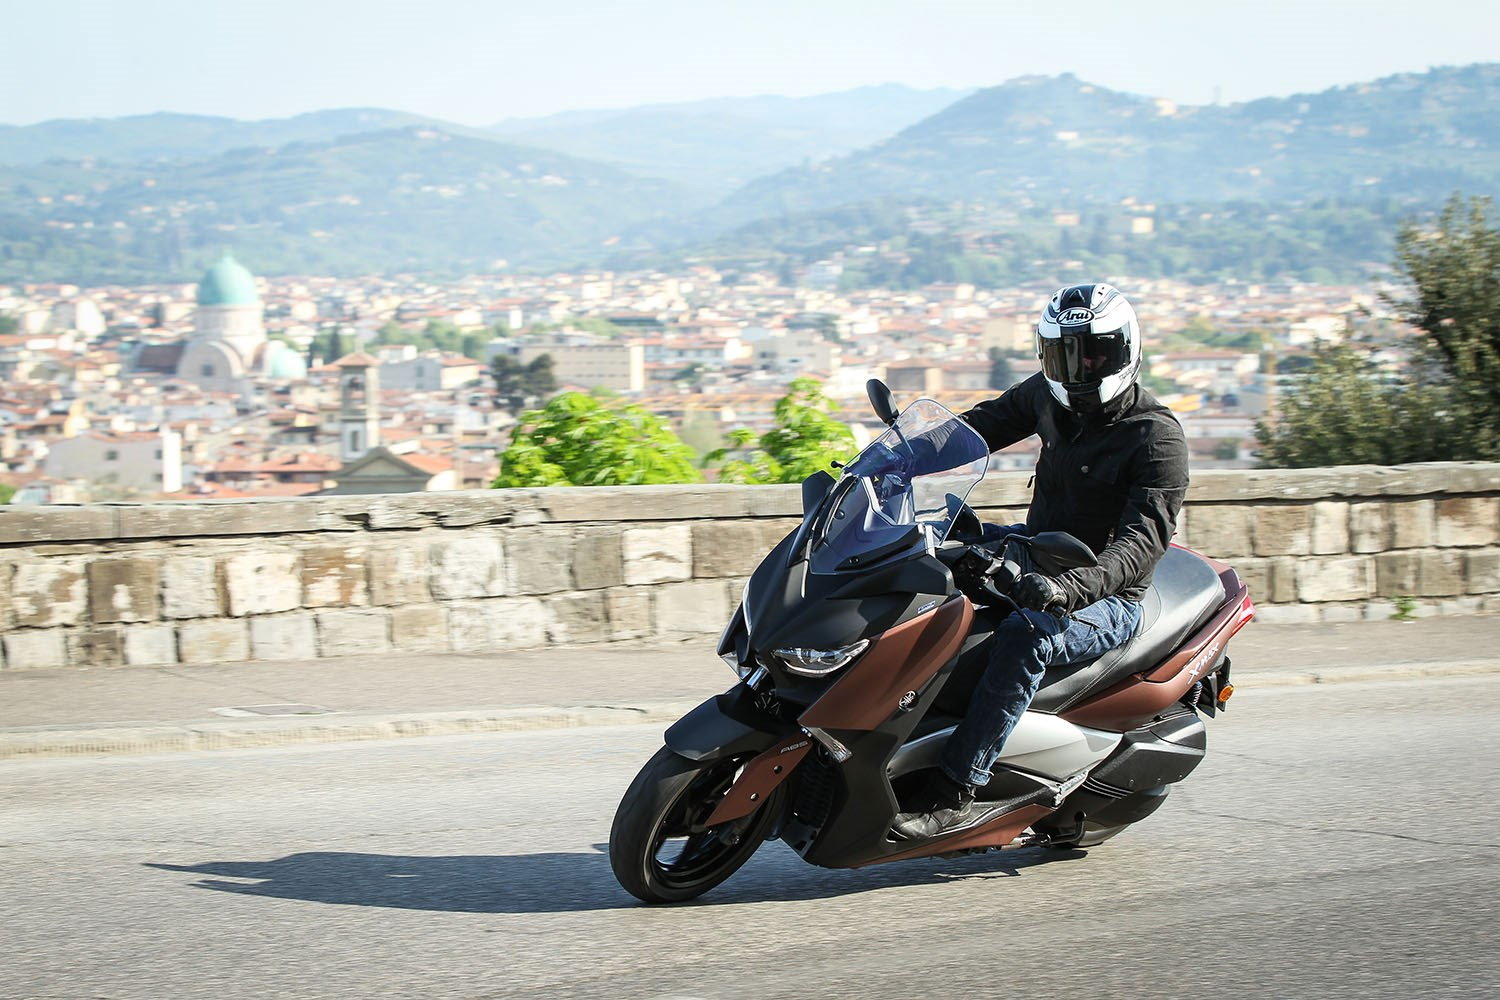 YAMAHA XMAX 300 (2017-on) Review